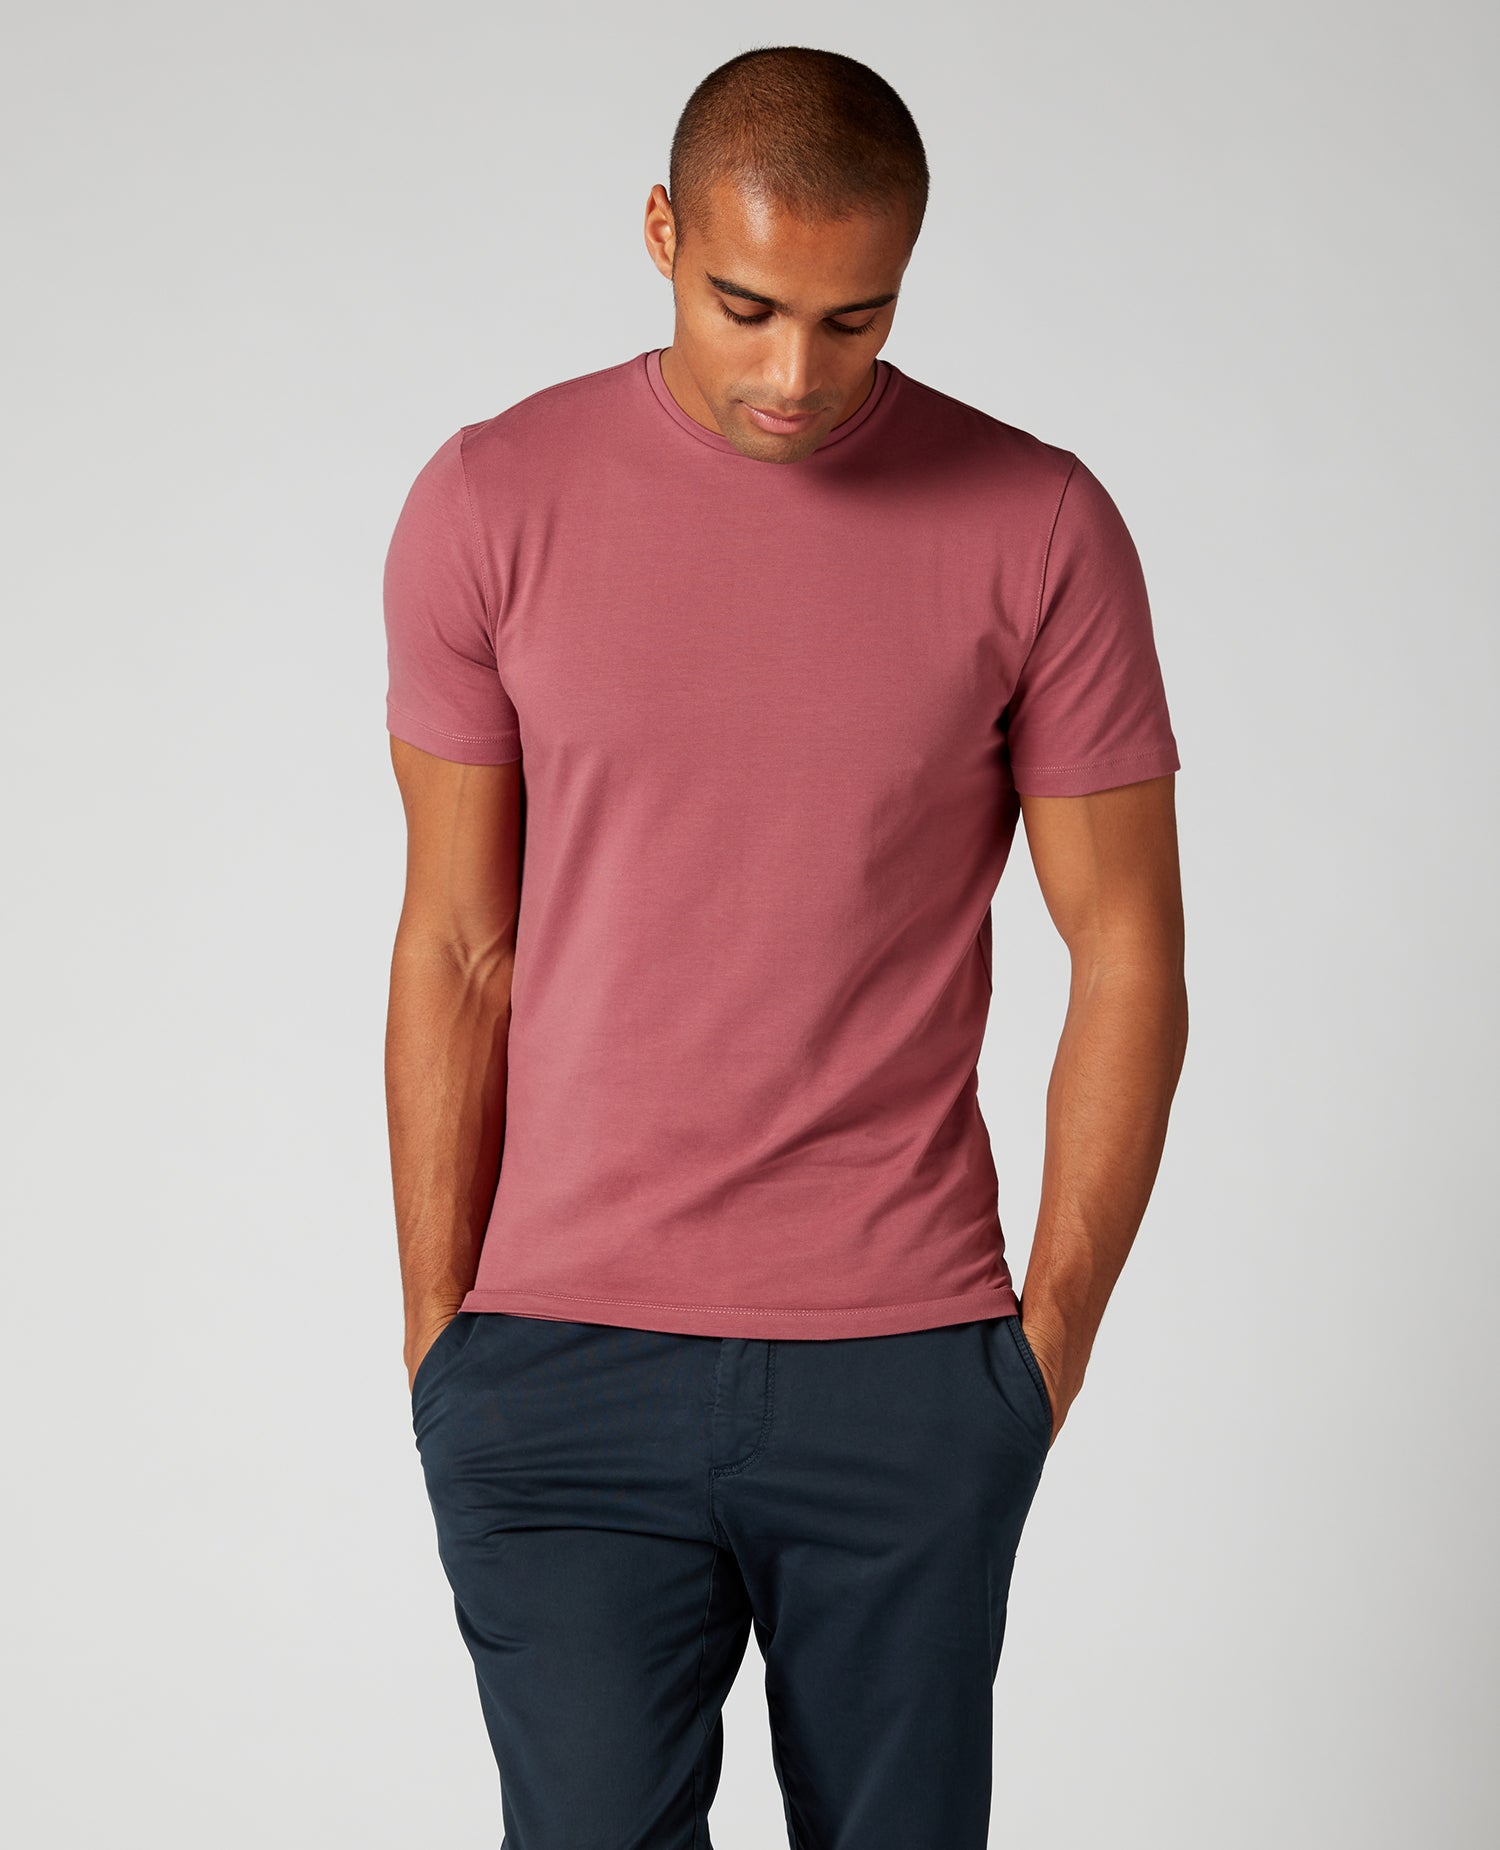 Remus cotton stretch t-shirt